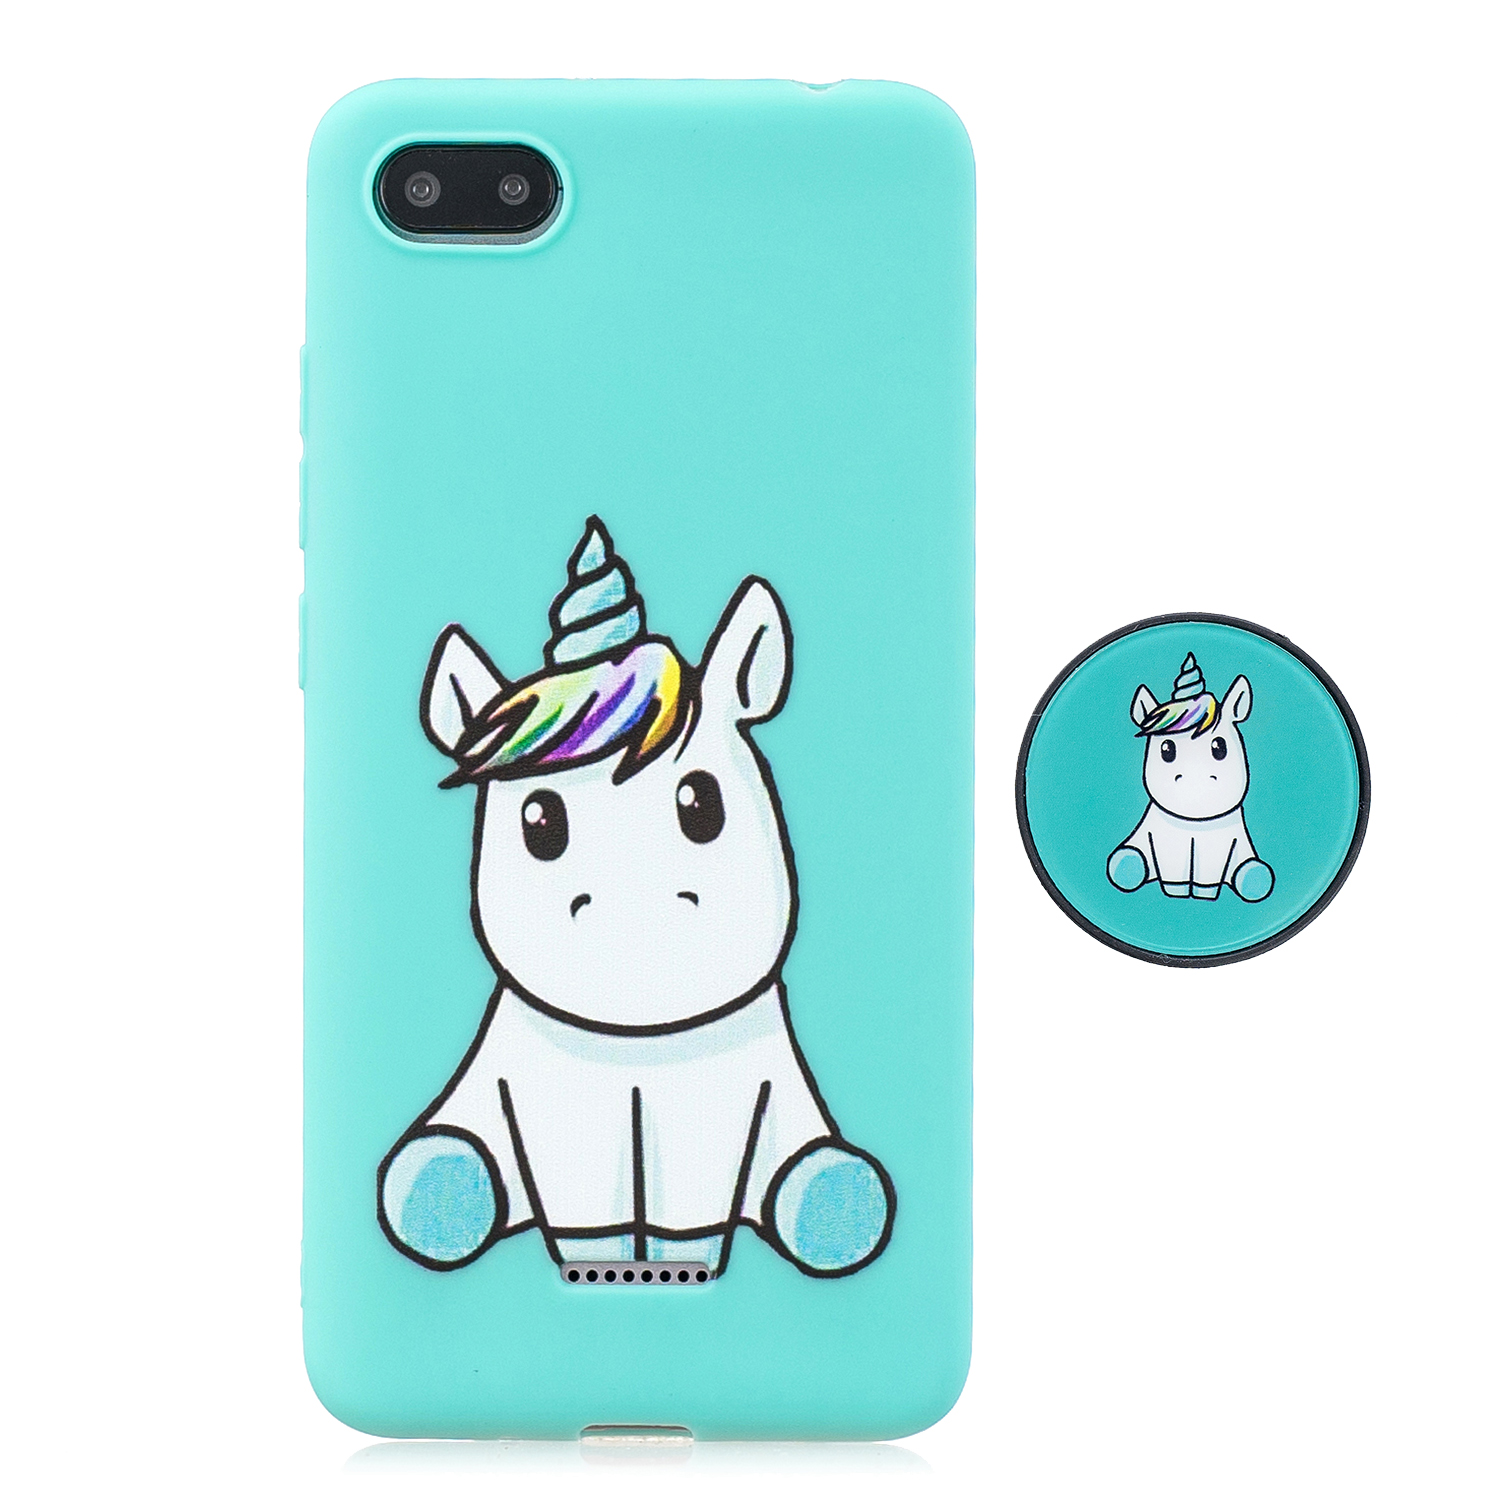 For Redmi 6A Phone Cases TPU Full Cover Cute Cartoon Painted Case Girls Mobile Phone Cover with Matched Pattern Adjustable Bracket 5